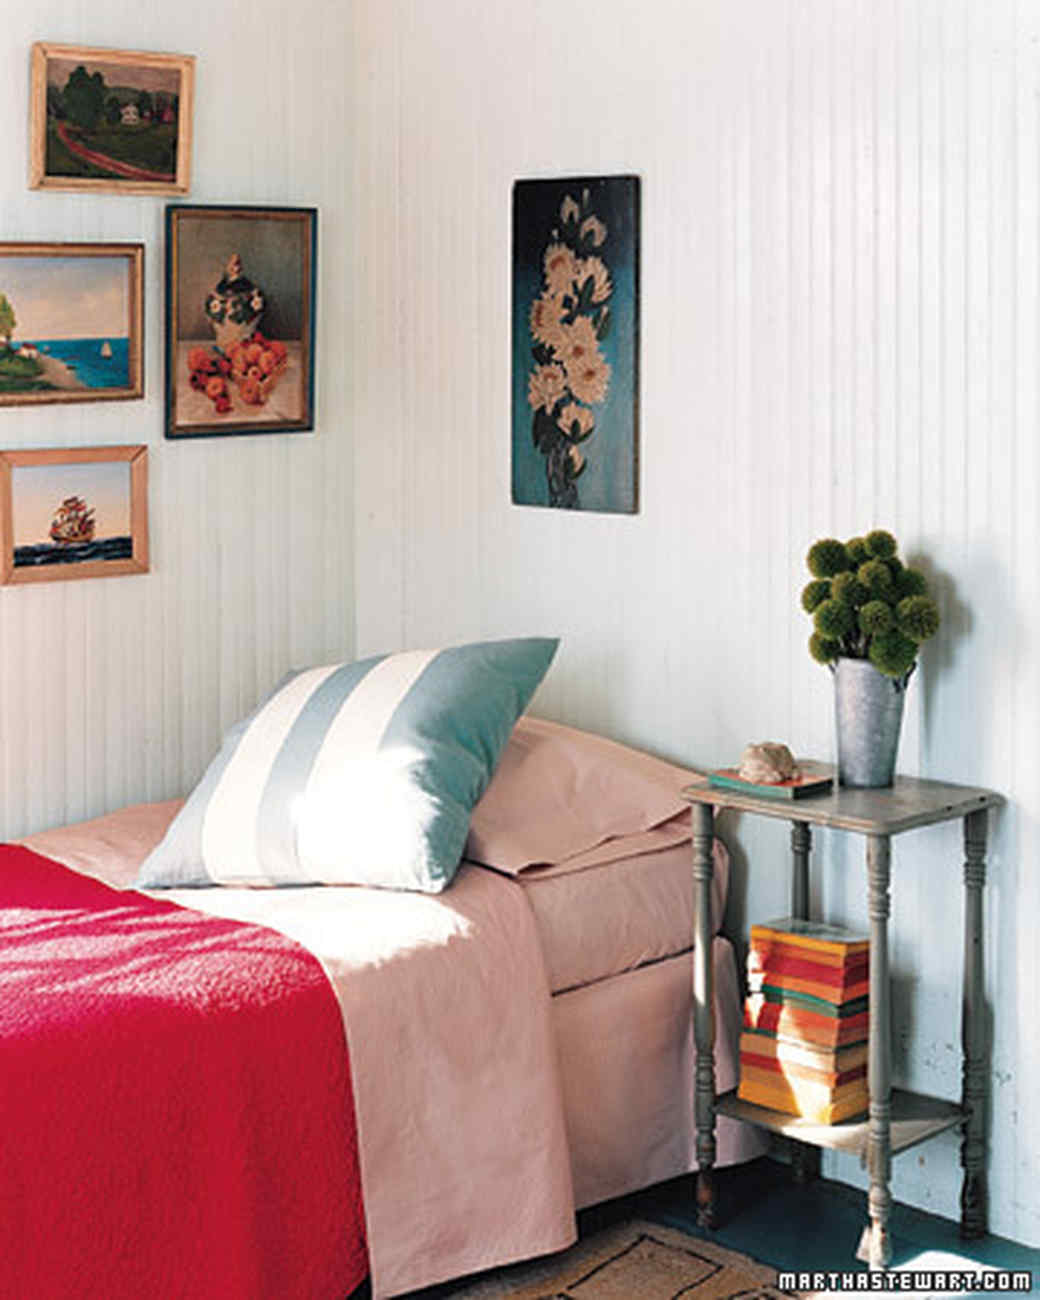 Bedroom Decor Supplies: Bedroom Decorating Ideas